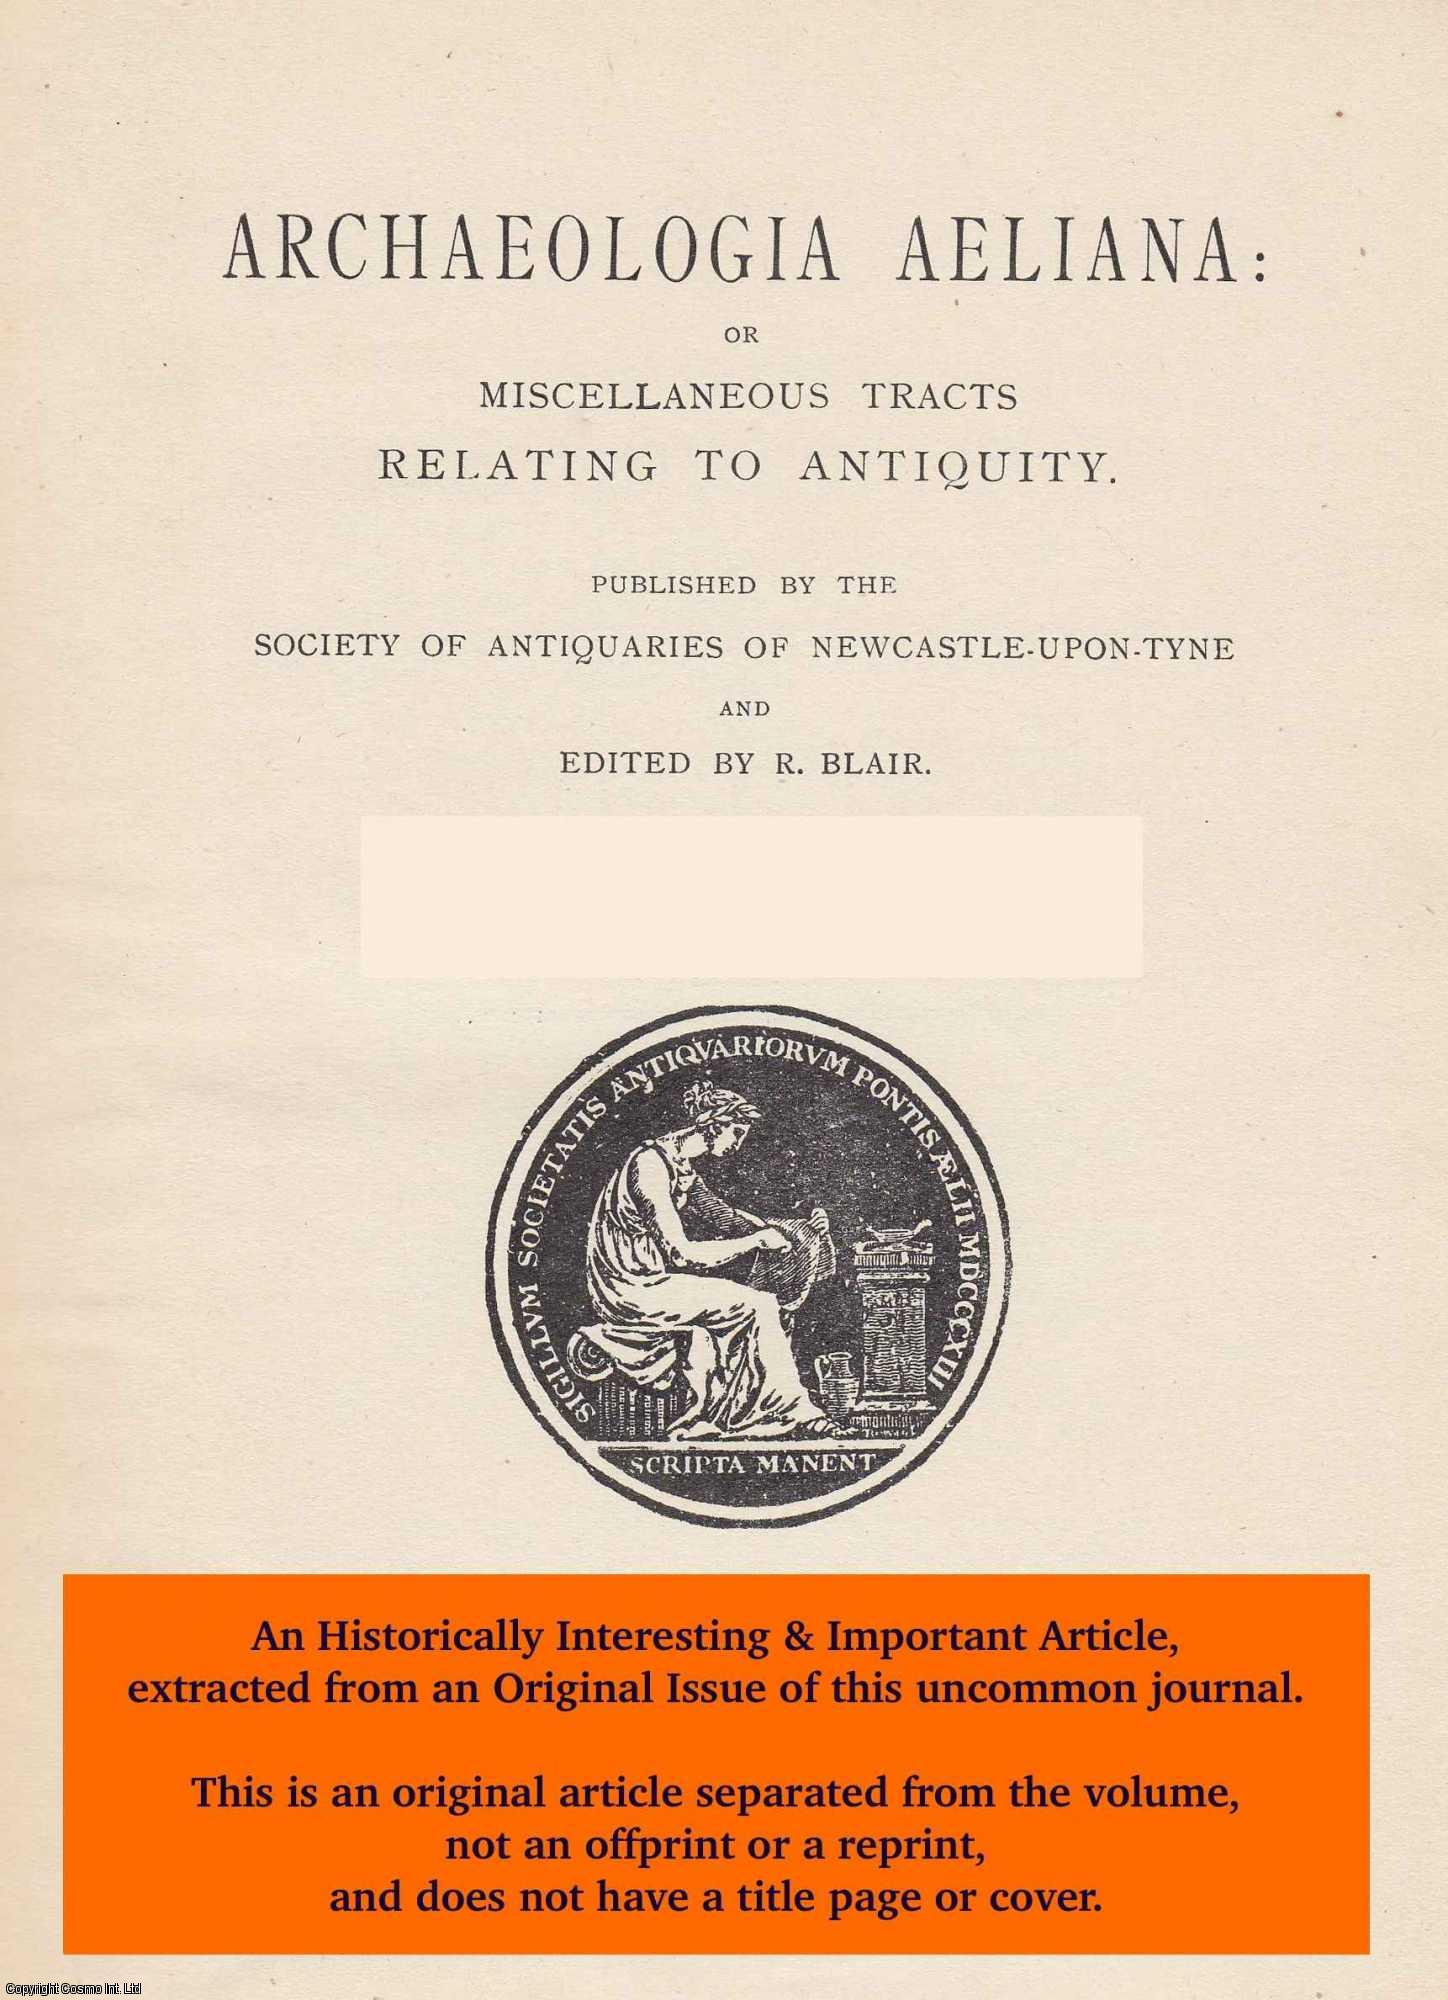 FORSTER & W. H. KNOWLES, R. H. - Corstopitum: Report on The Excavations in 1909. An original article from The Archaeologia Aeliana: or Miscellaneous Tracts Relating to Antiquity, 1910.